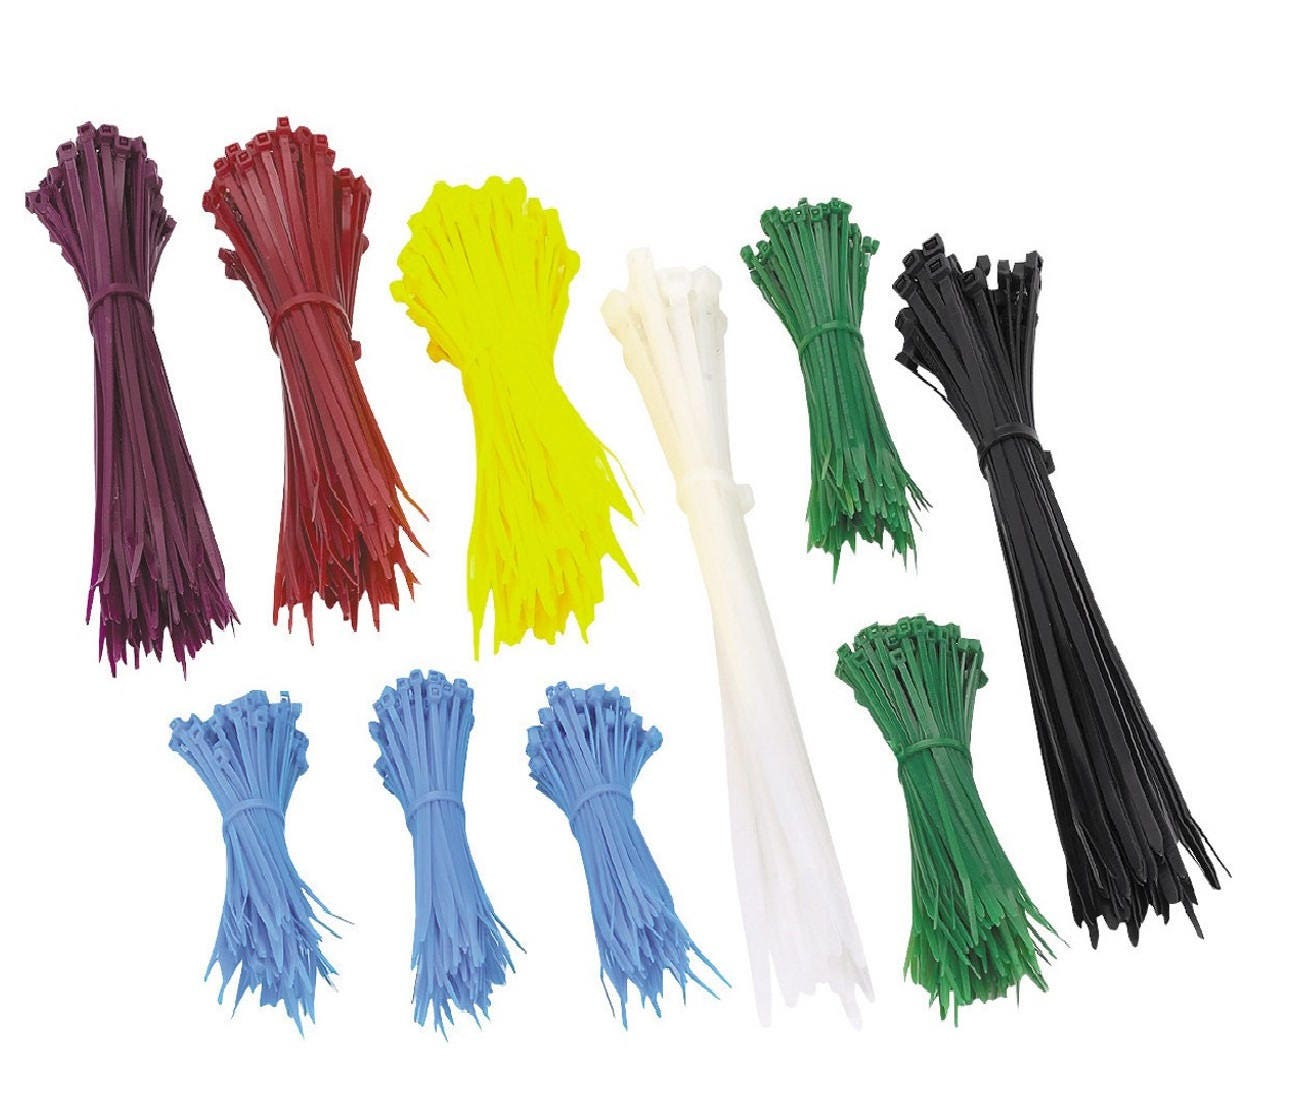 Cable Zip Ties 1000pcs Mixed Colors Nylon hobby and craft gardening ...